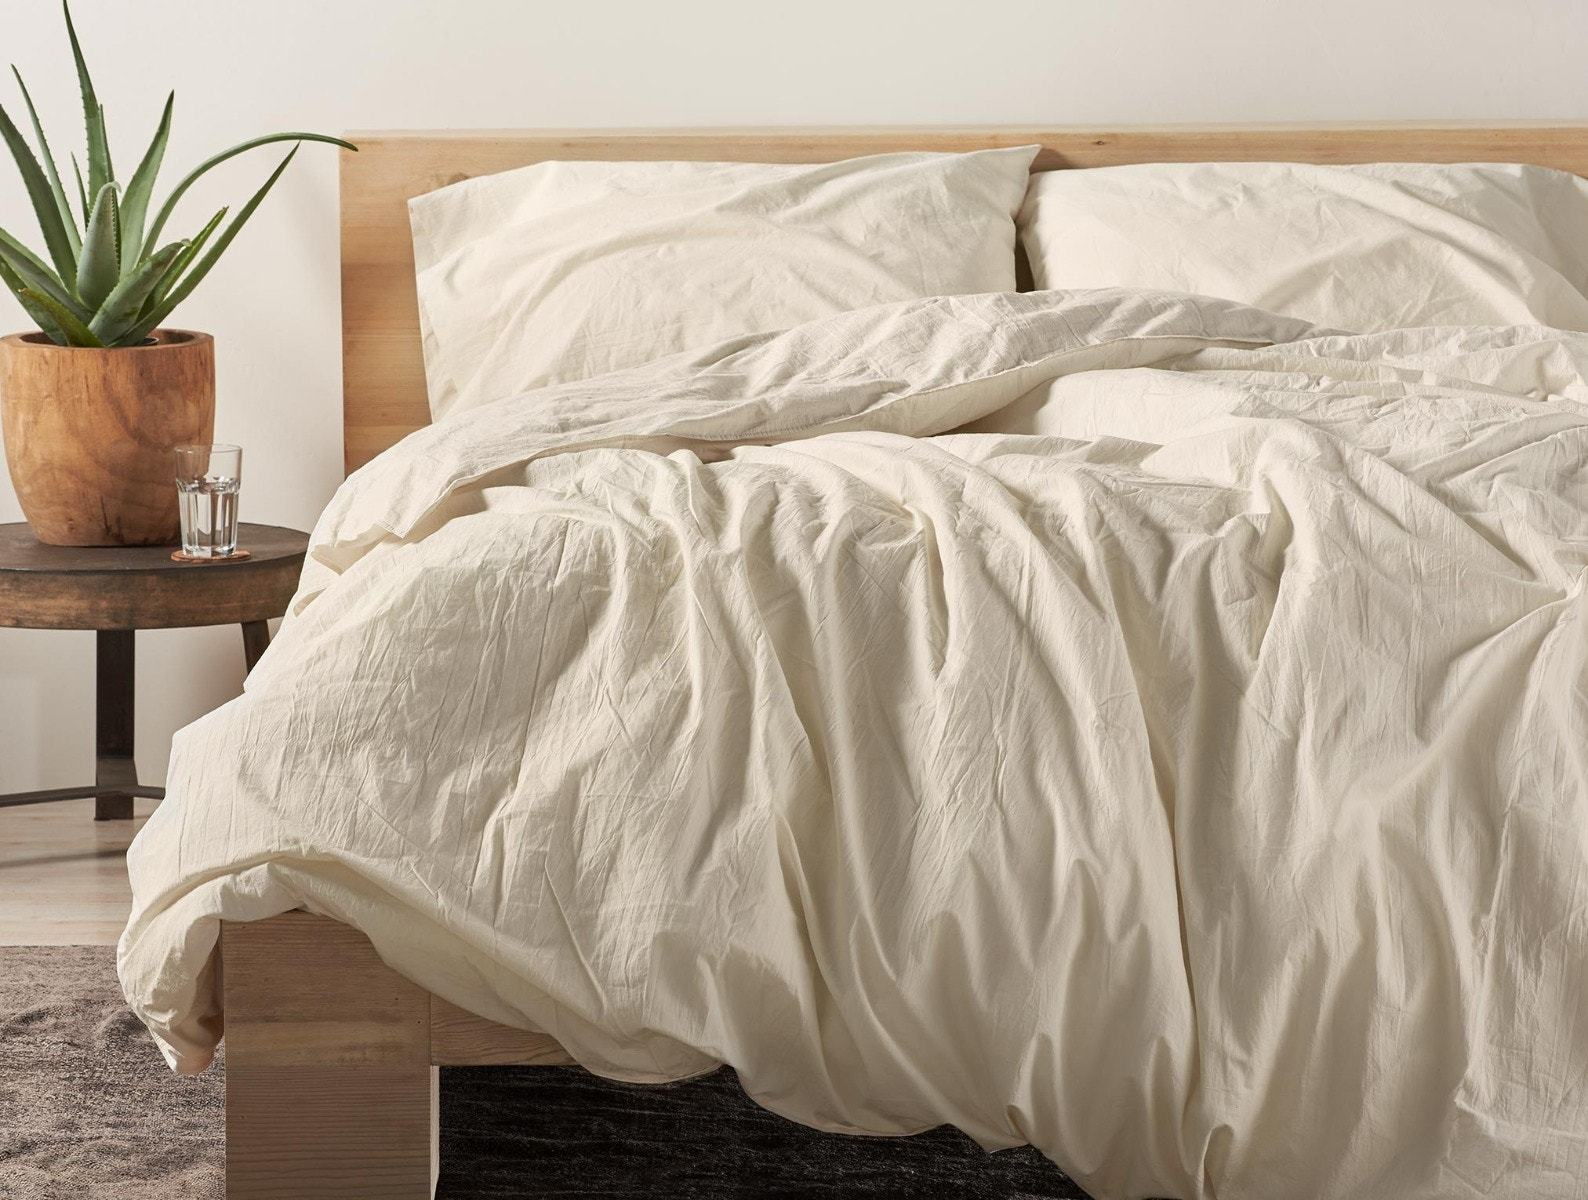 Undyed Organic Crinkled Percale Duvet Cover by Coyuchi